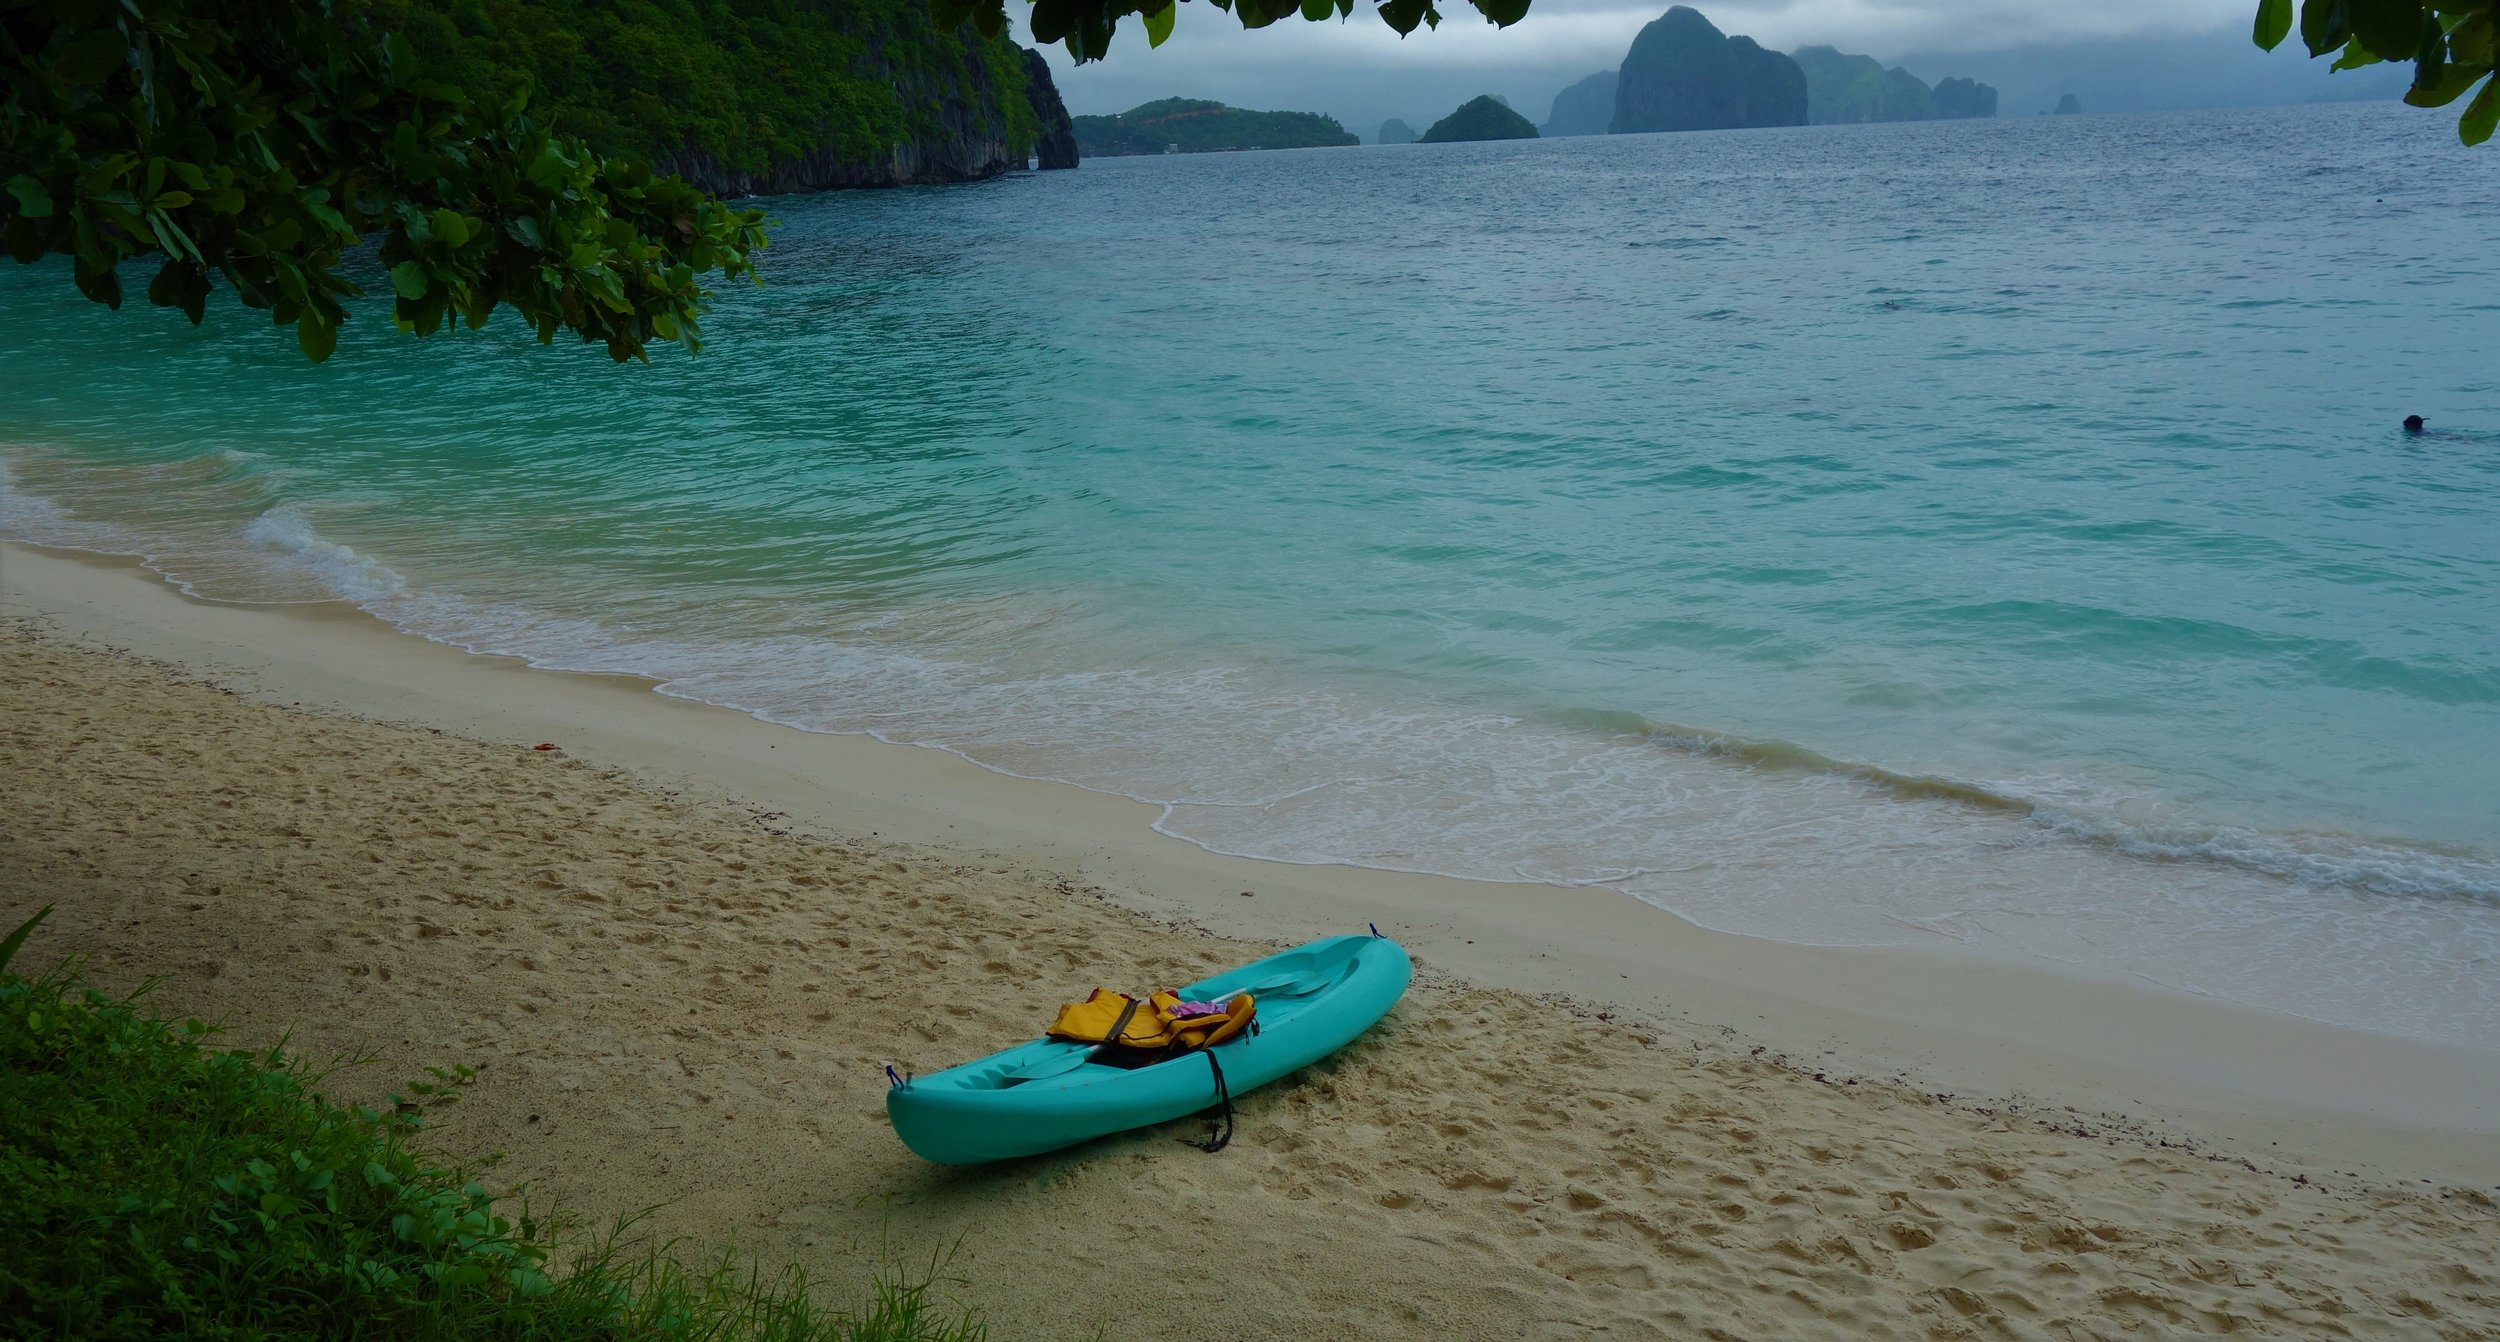 Kayak to Papaya Beach - Just next to 7 Commandos Beach, Papaya Beach is a less crowded idyllic beach with a volleyball net, a basket, hammocks and swings. From El Nido Beach, it will take you around 1h but you can also start from Corong Corong.